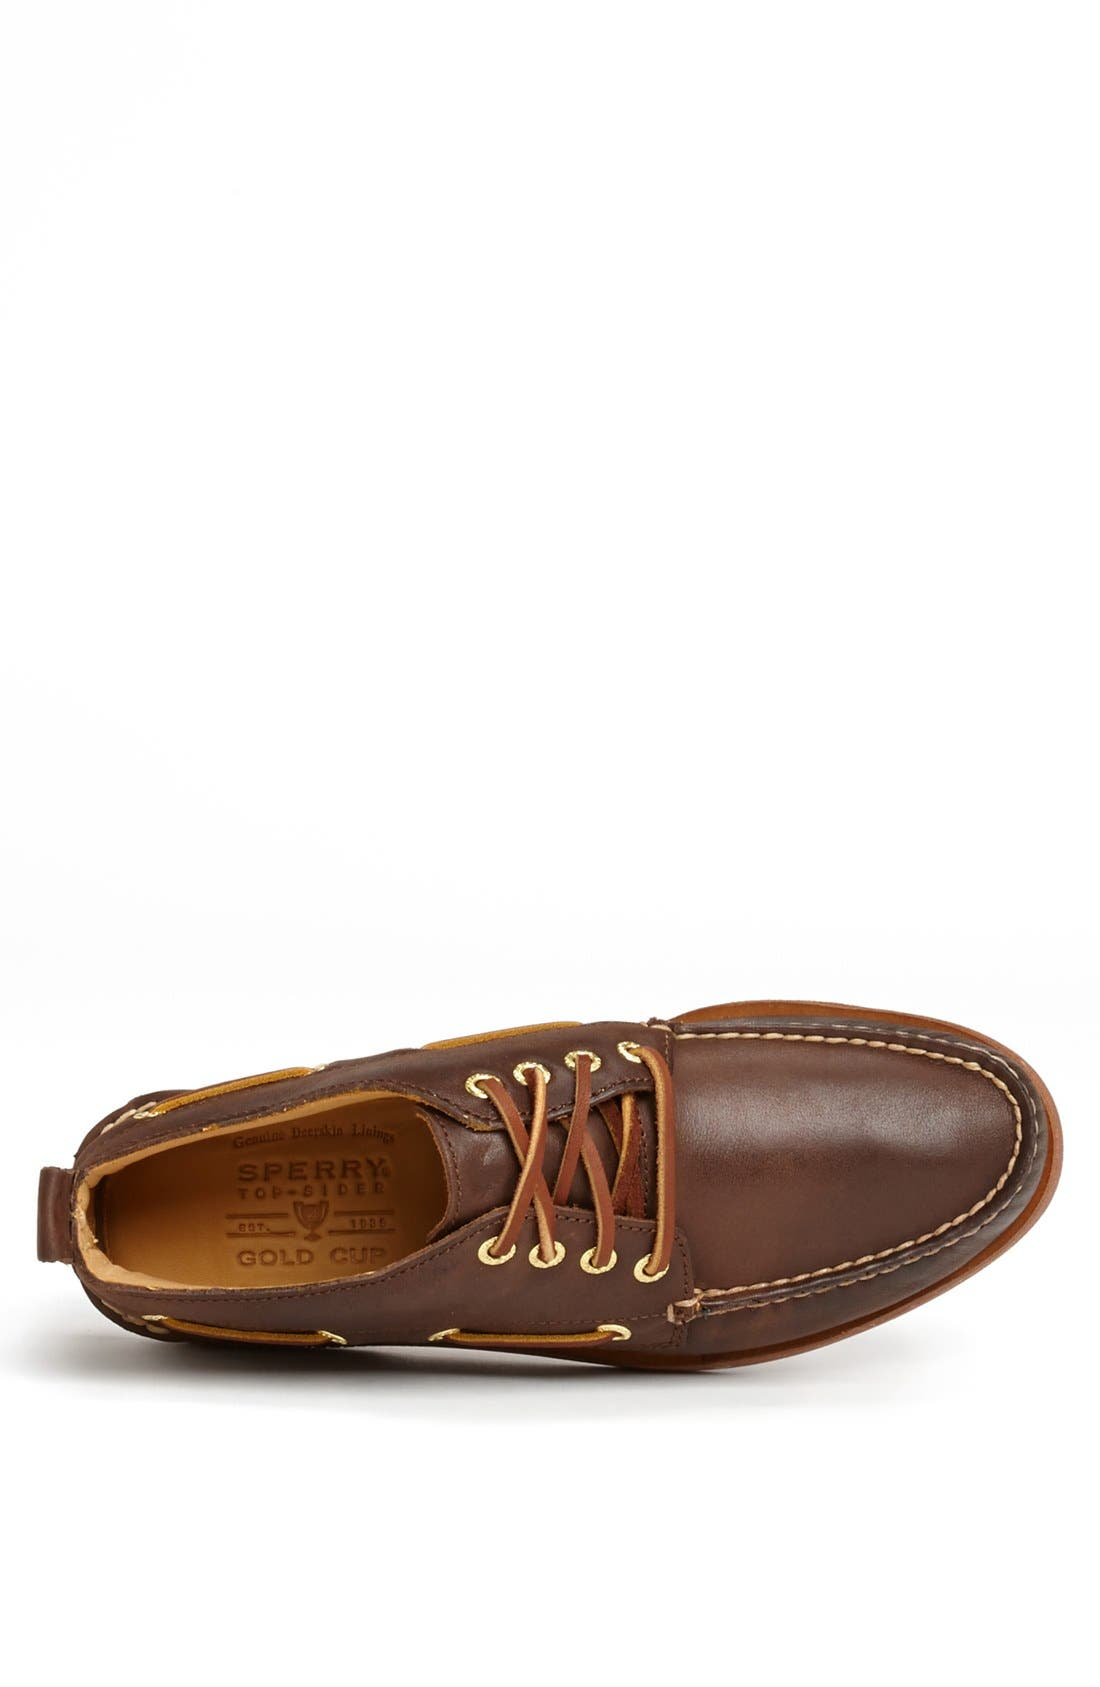 Alternate Image 3  - Sperry Top-Sider® 'Gold Cup' Chukka Boot